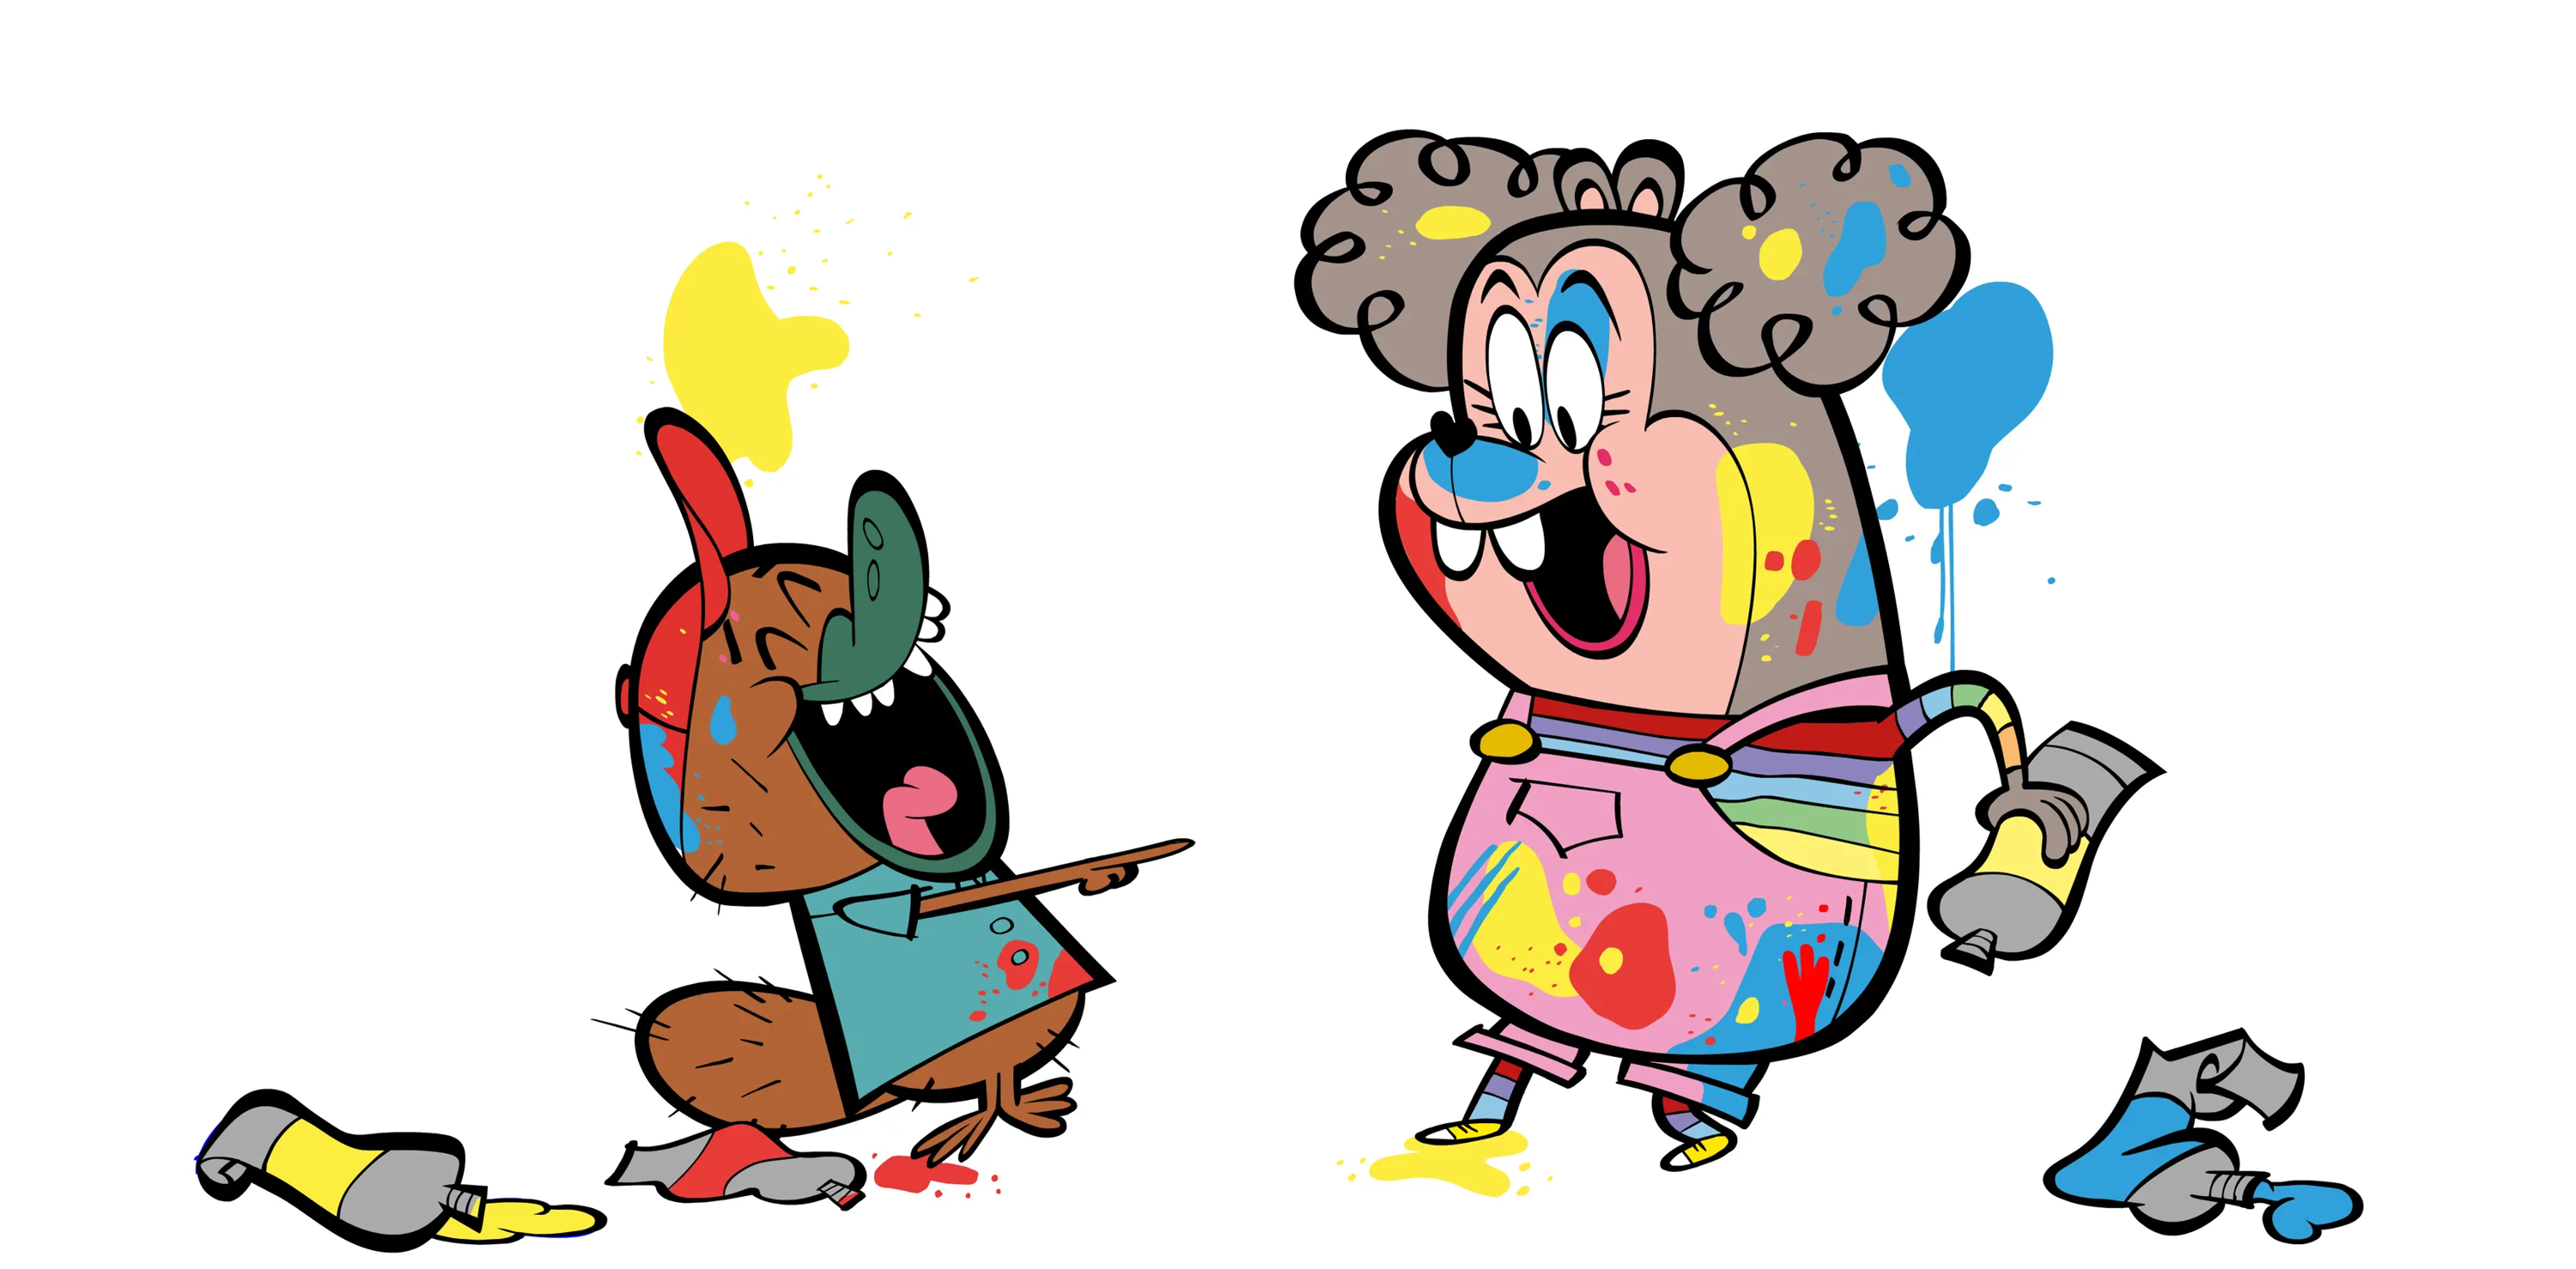 illustrated characters laughing and covered in paint